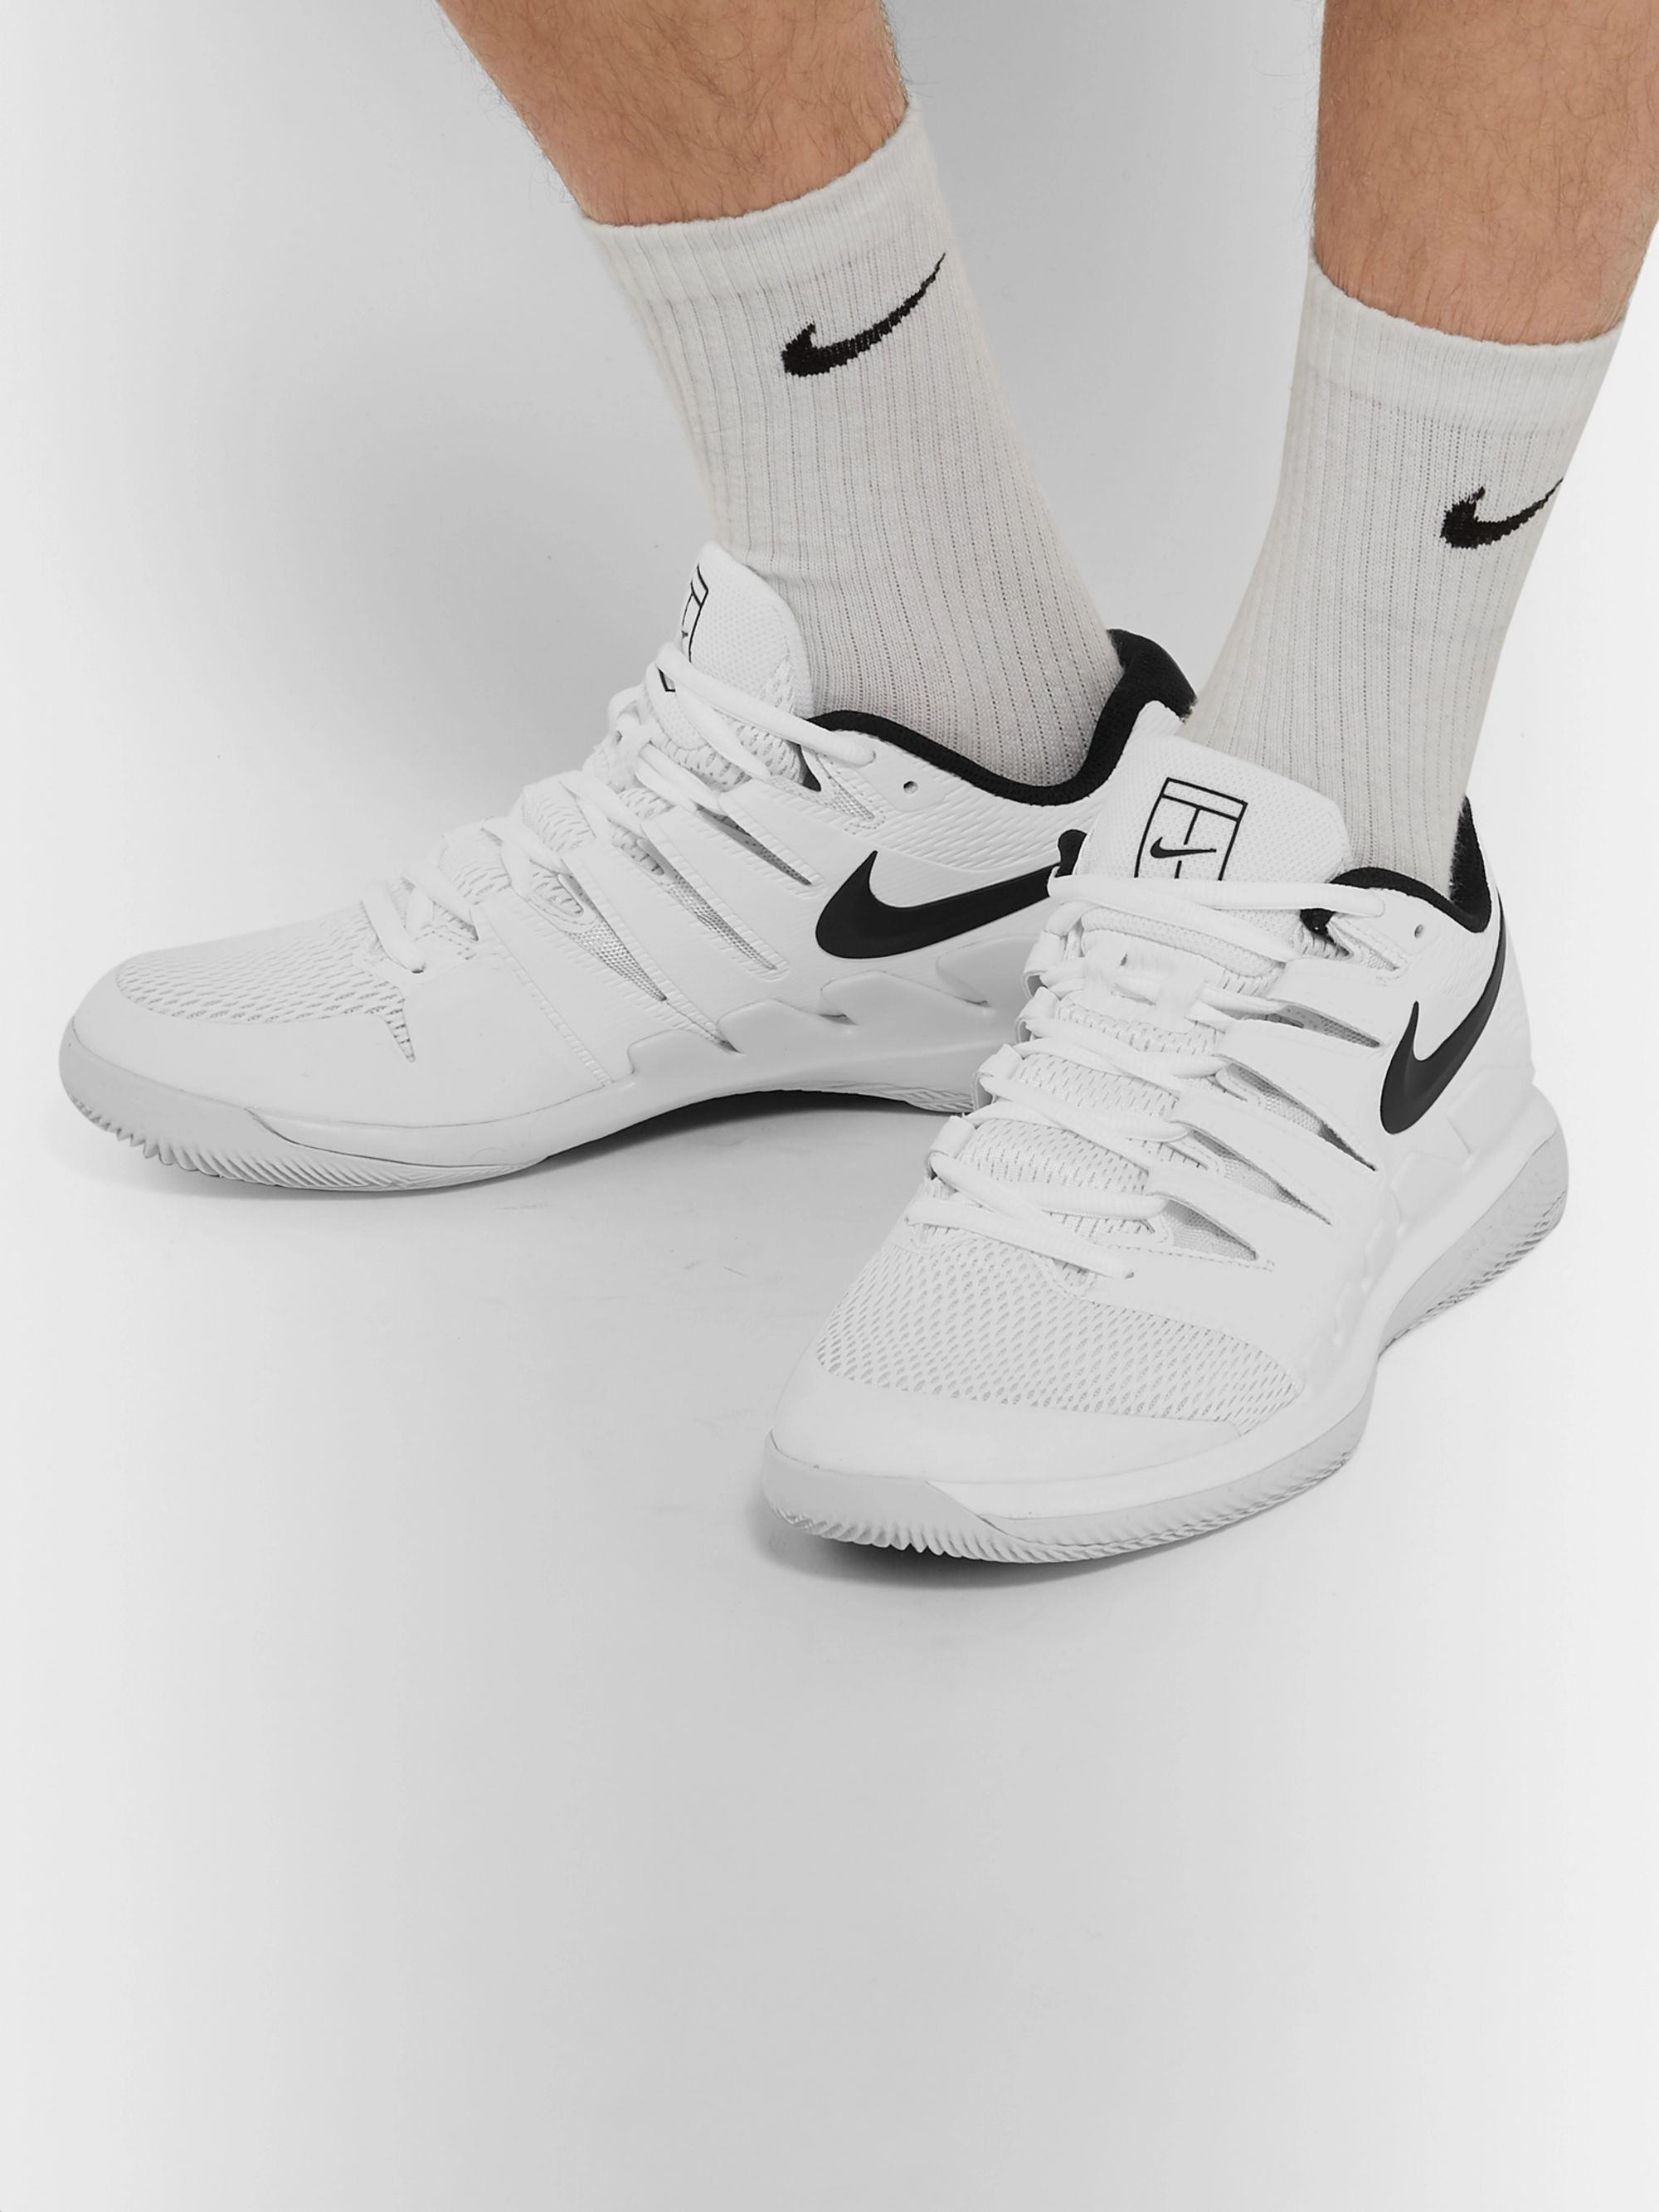 White Air Zoom Vapor X HC Rubber and Mesh Tennis Sneakers